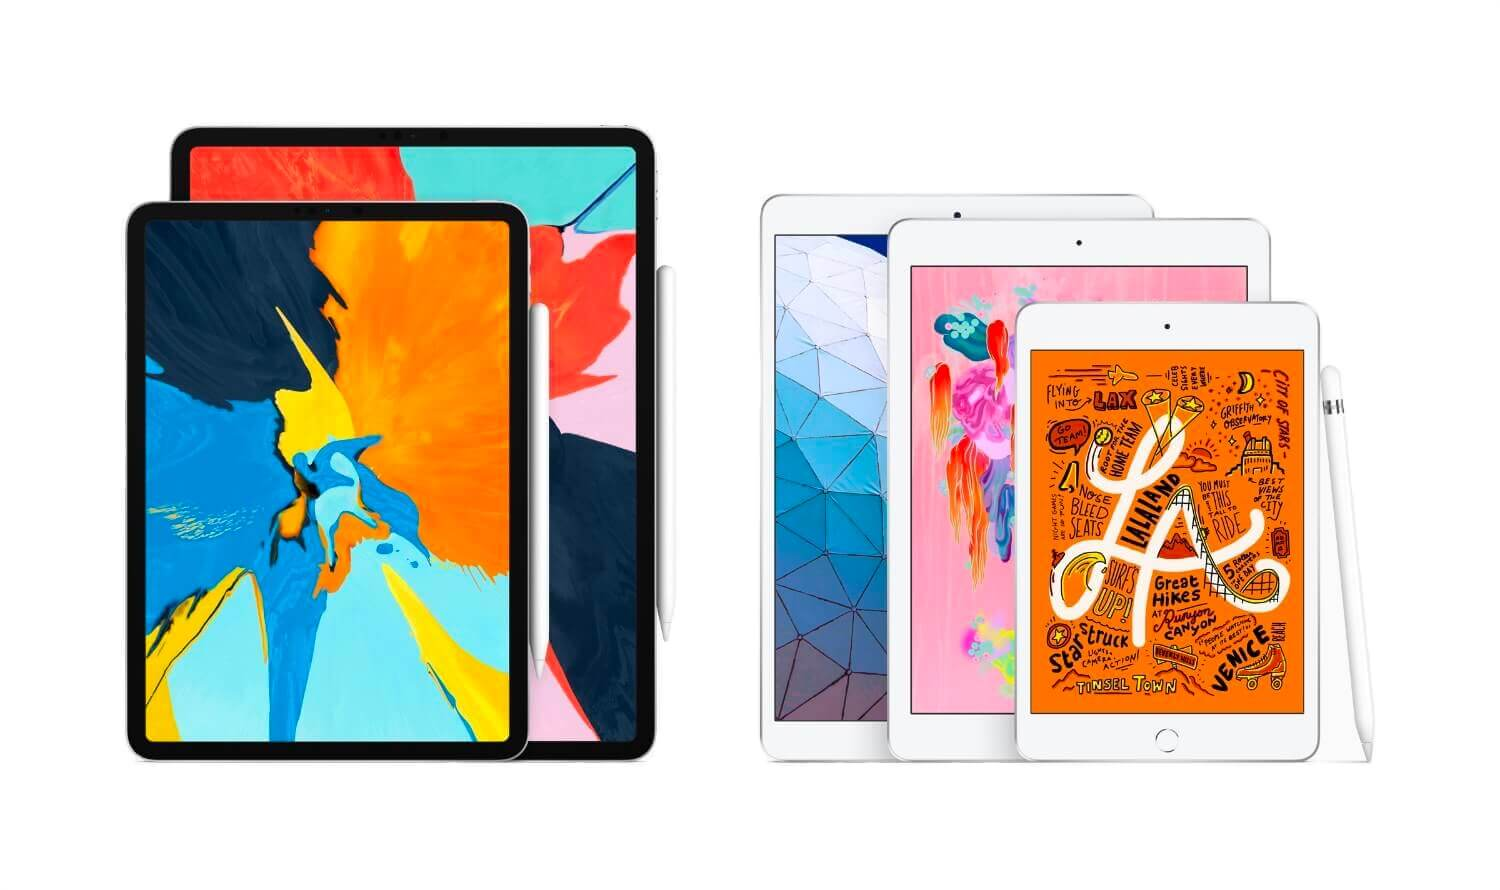 Apple quietly refreshes iPad Air and iPad Mini with A12 Bionic processor